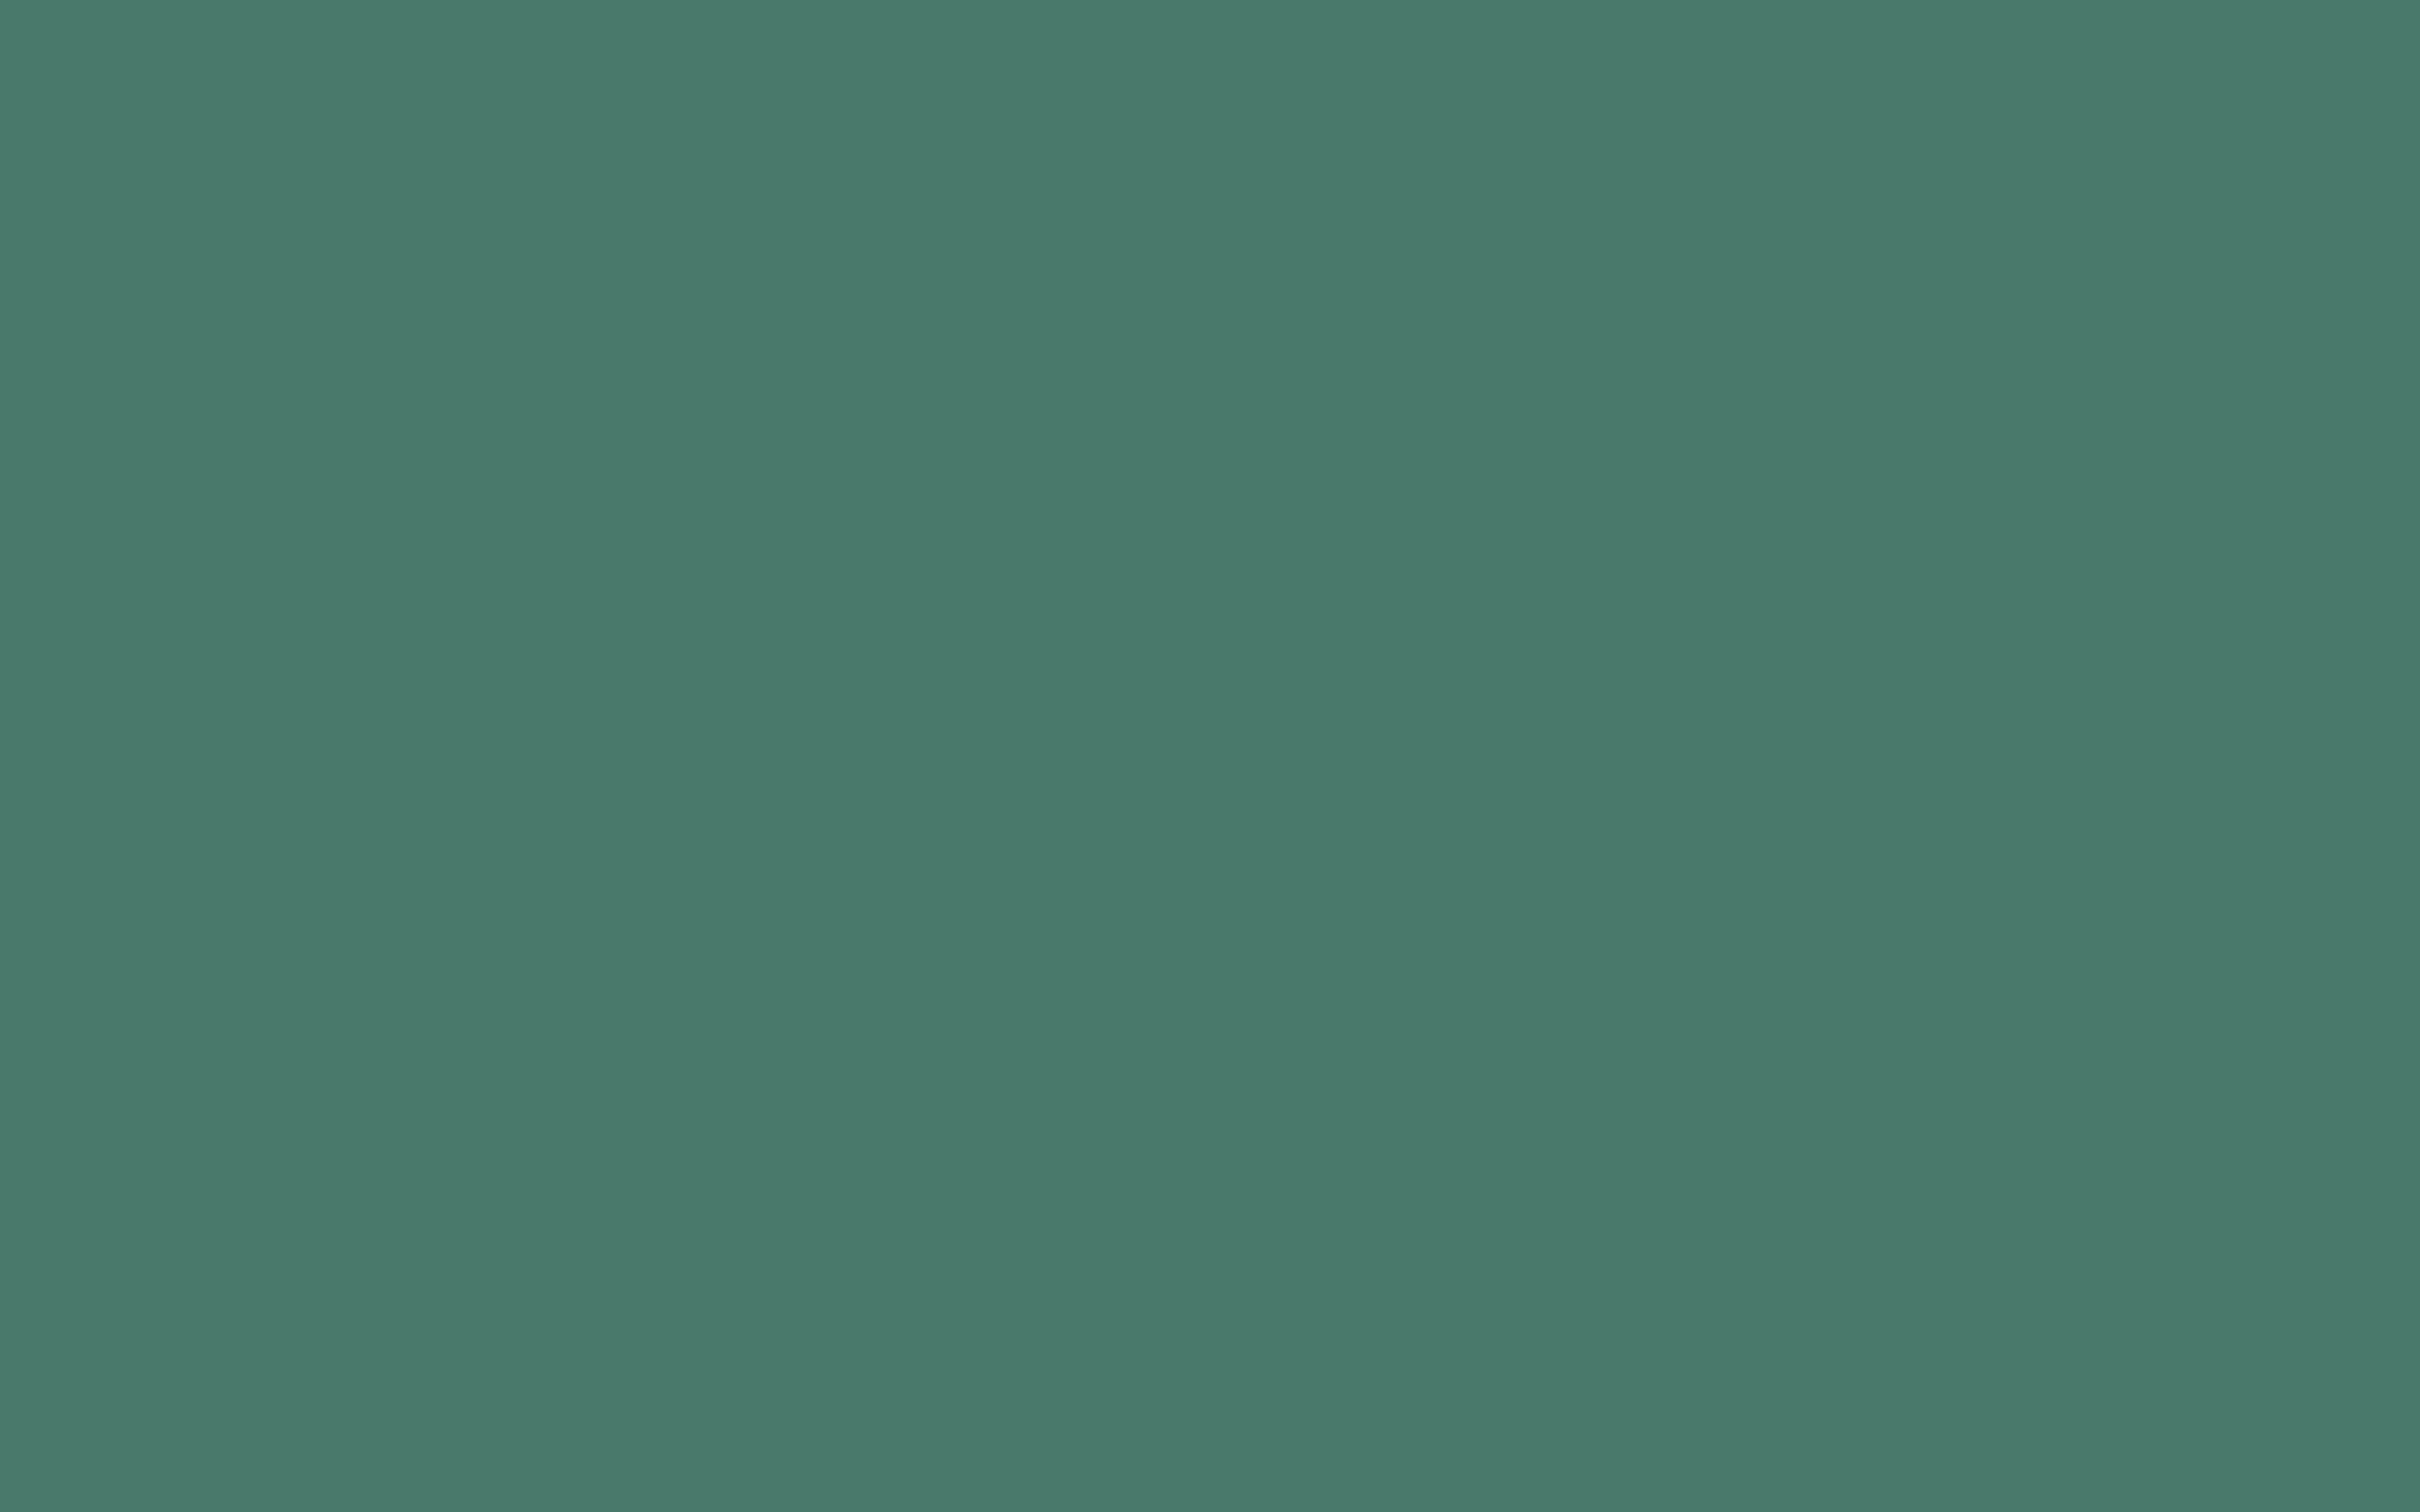 2560x1600 Hookers Green Solid Color Background